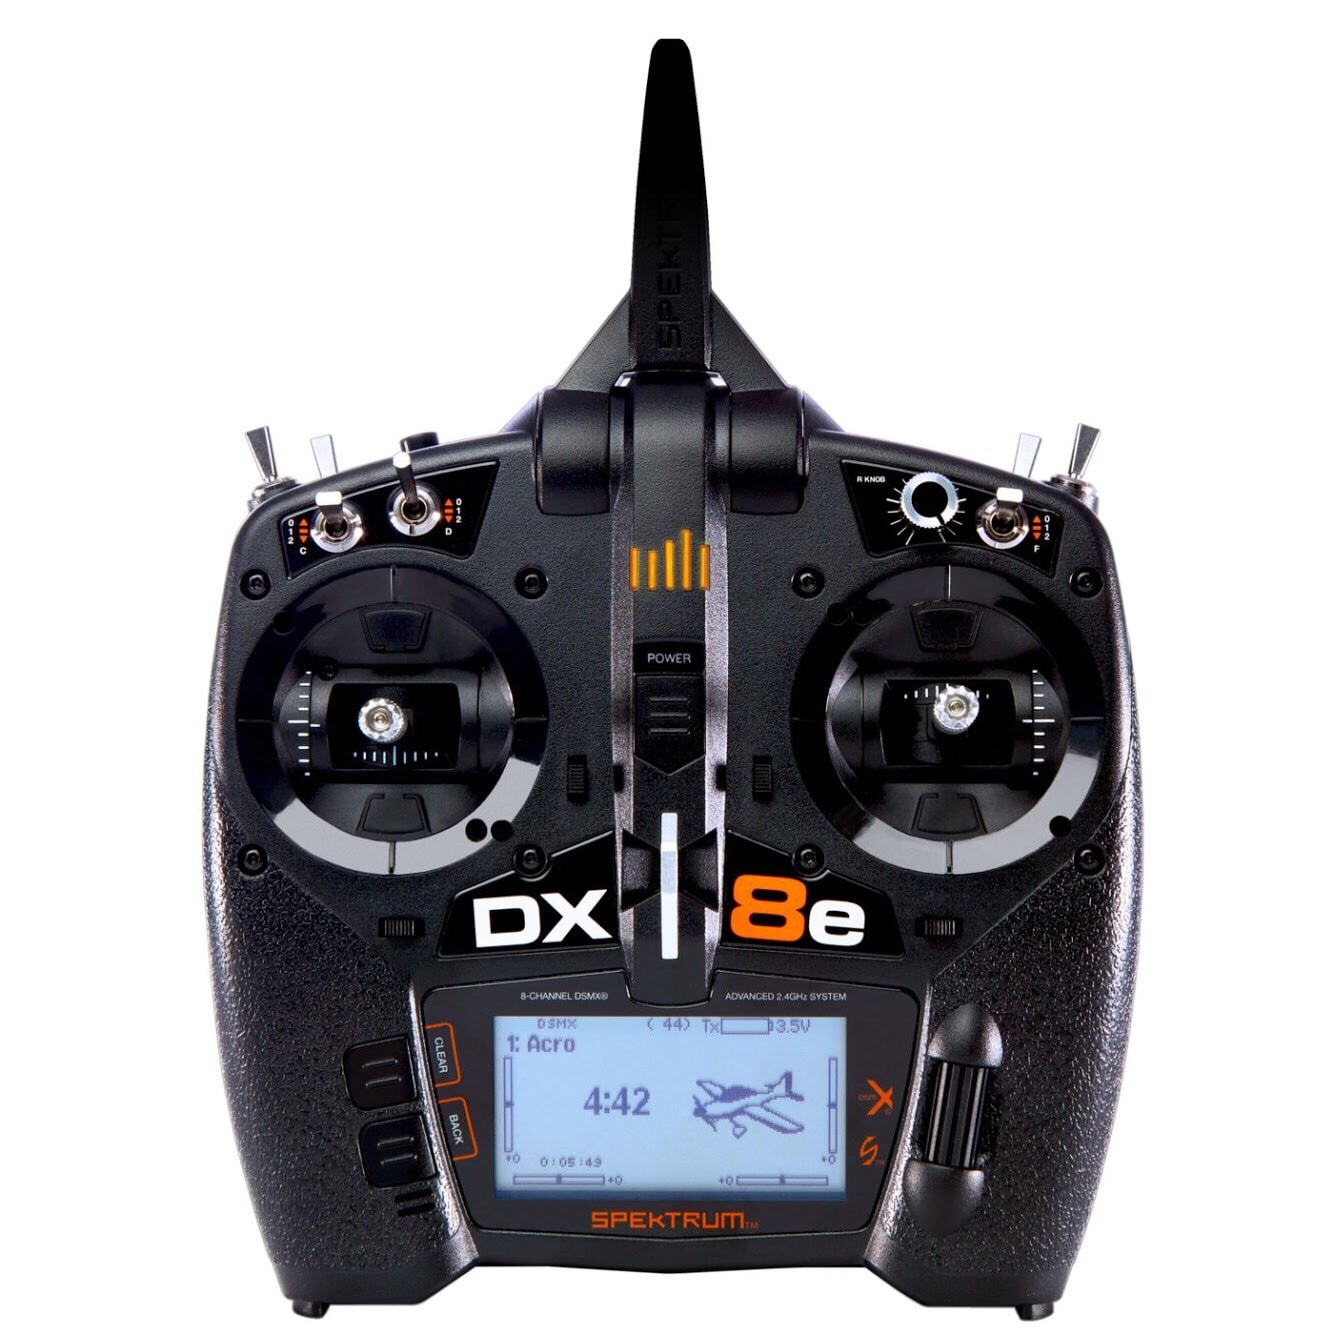 Spektrum DX8e 8-channel R/C Controller